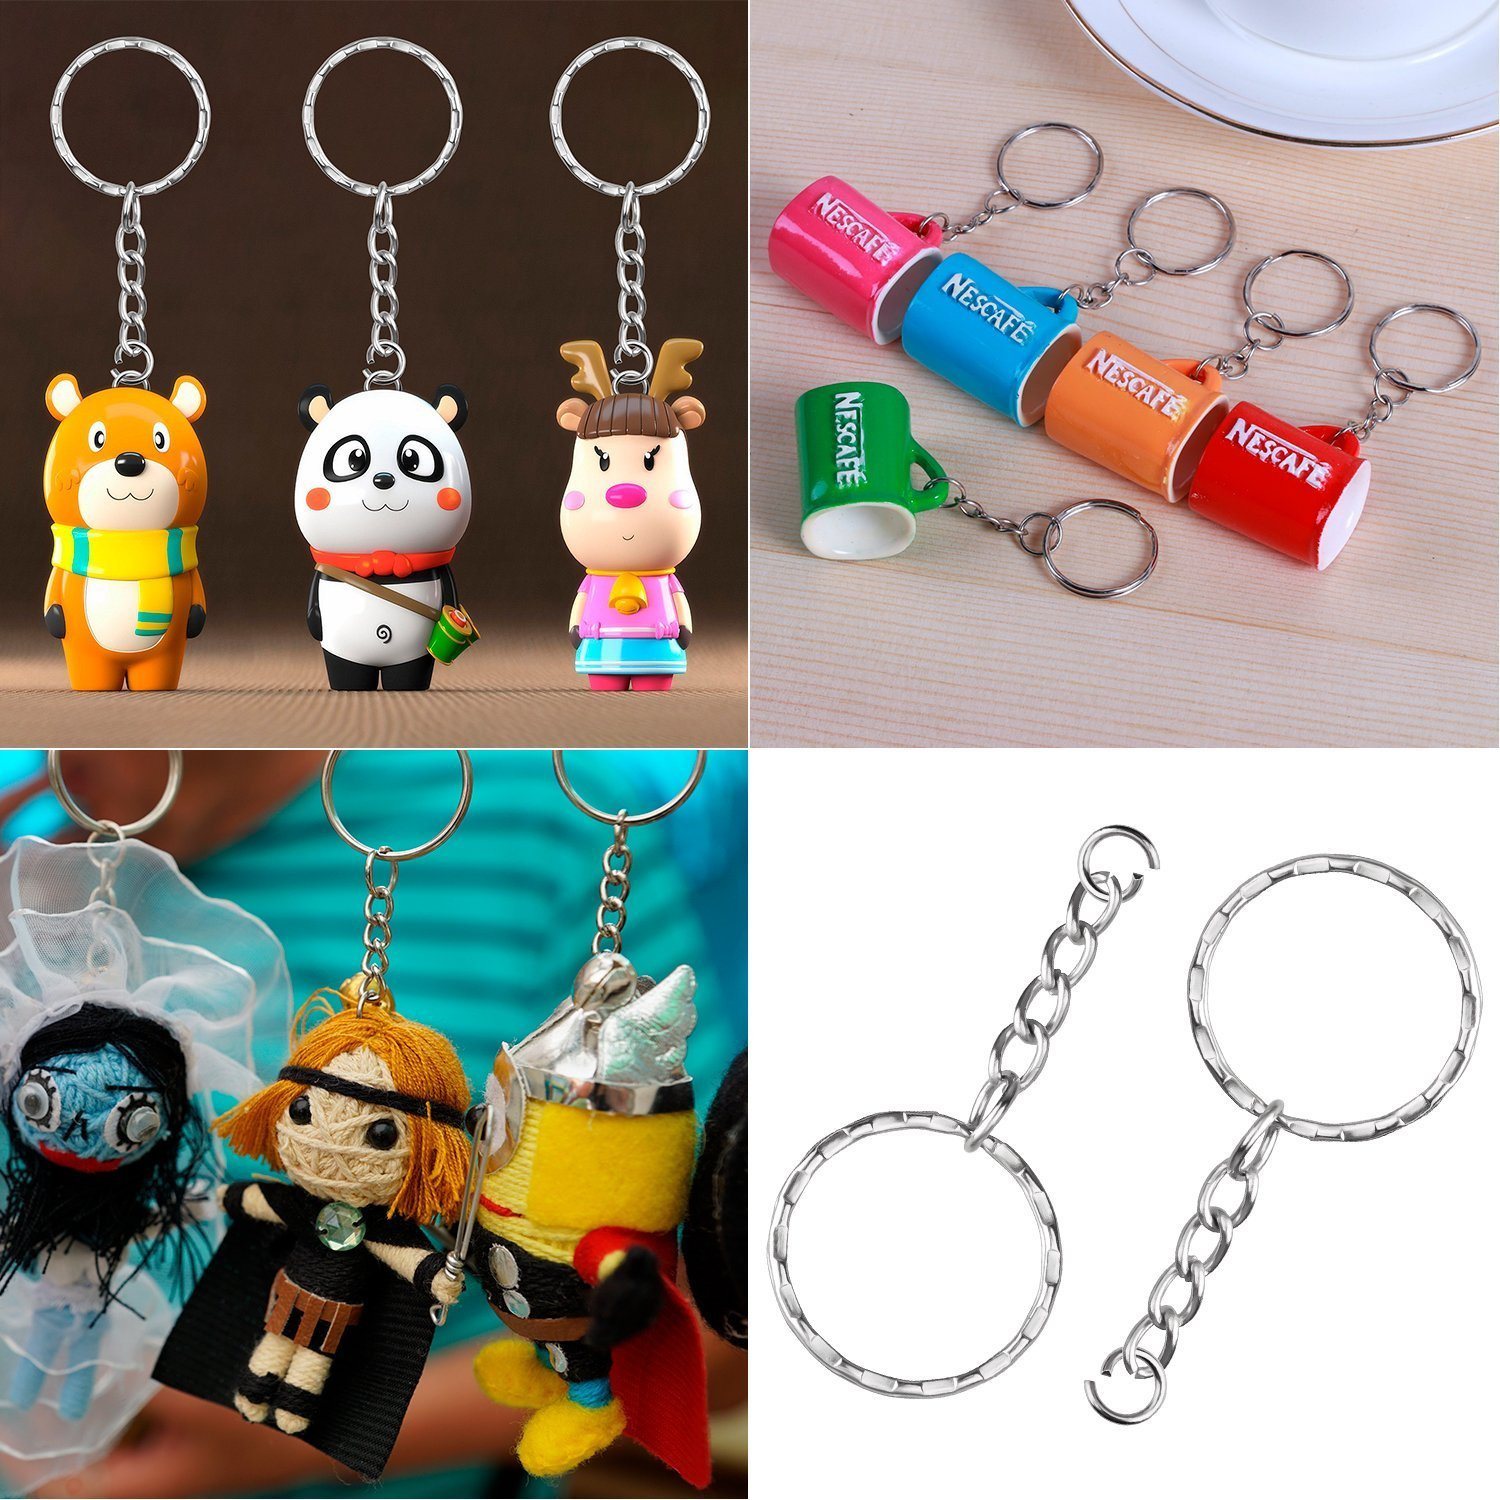 1 Inch//25mm 200Pcs Keychain Rings with Chain and 200Pcs Jump Ring with 200Pcs Screw Eye Pins Bulk for Jewelry Findings Making Auwoo 600Pcs Sliver Key Chain Rings Kit